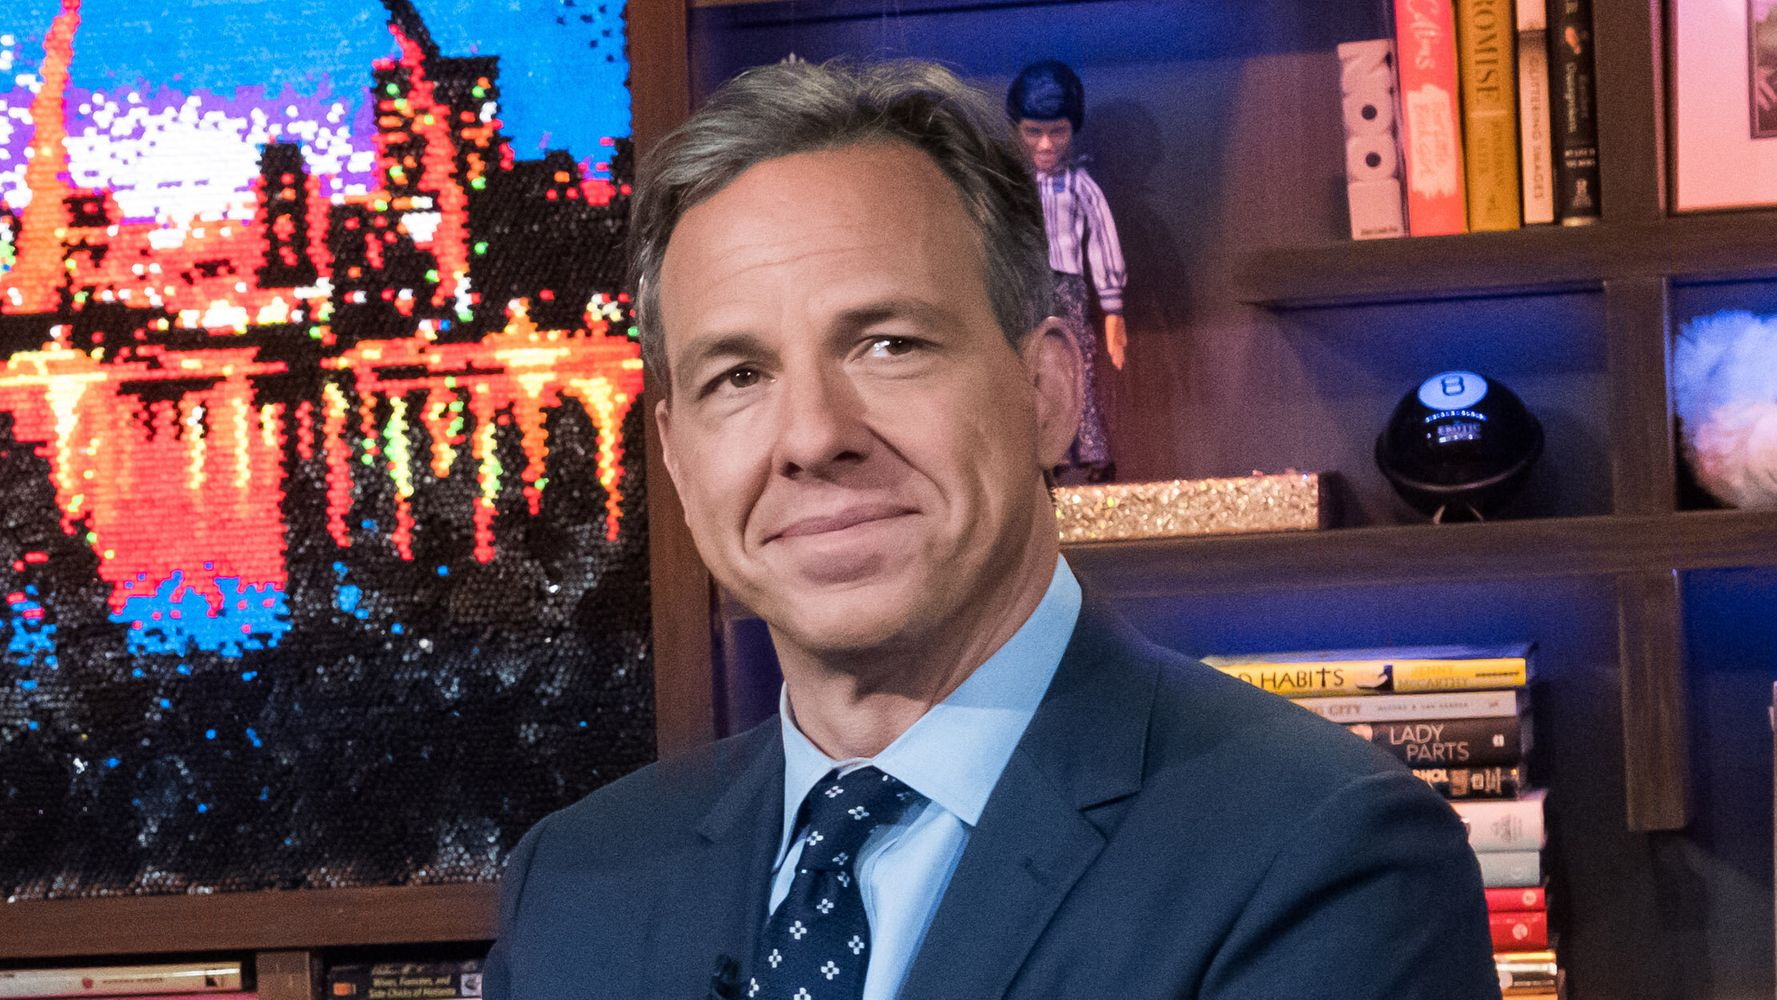 Every White Man In Corporate America Should Watch What Jake Tapper Just Did